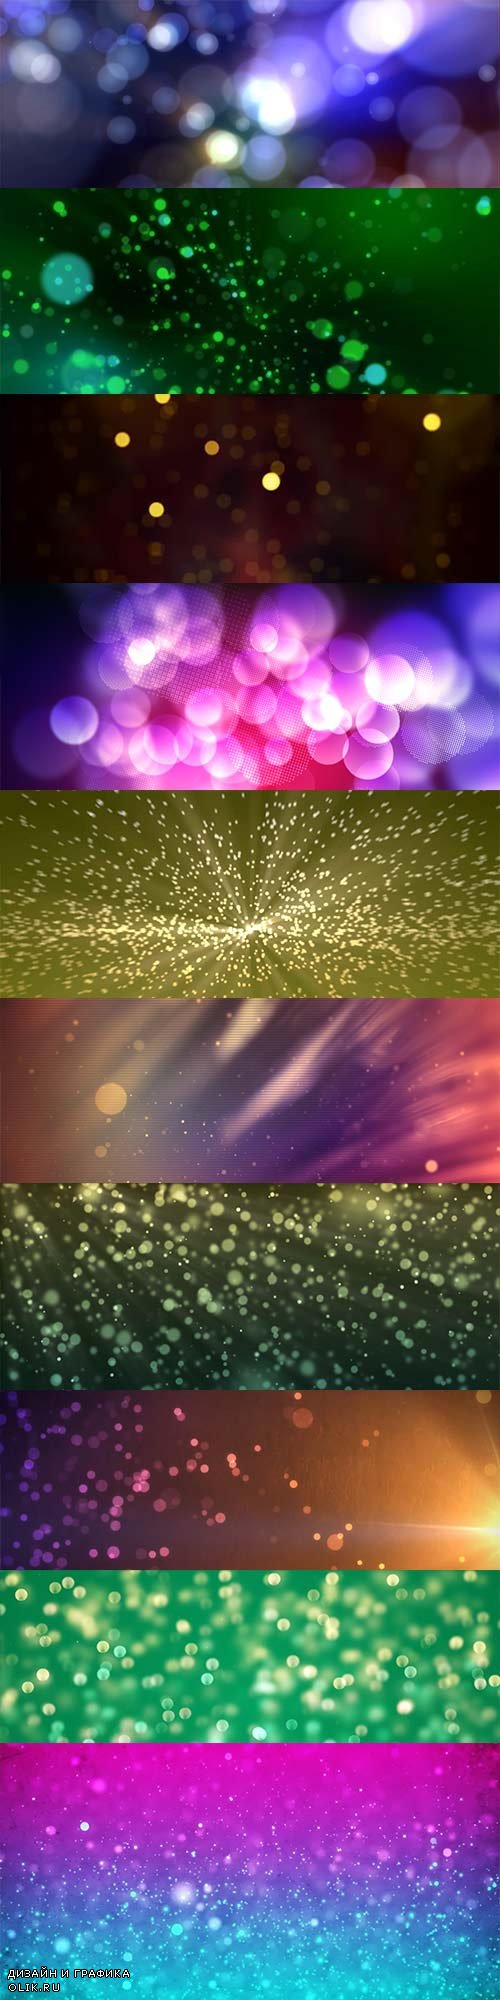 10 bokeh motion backgrounds